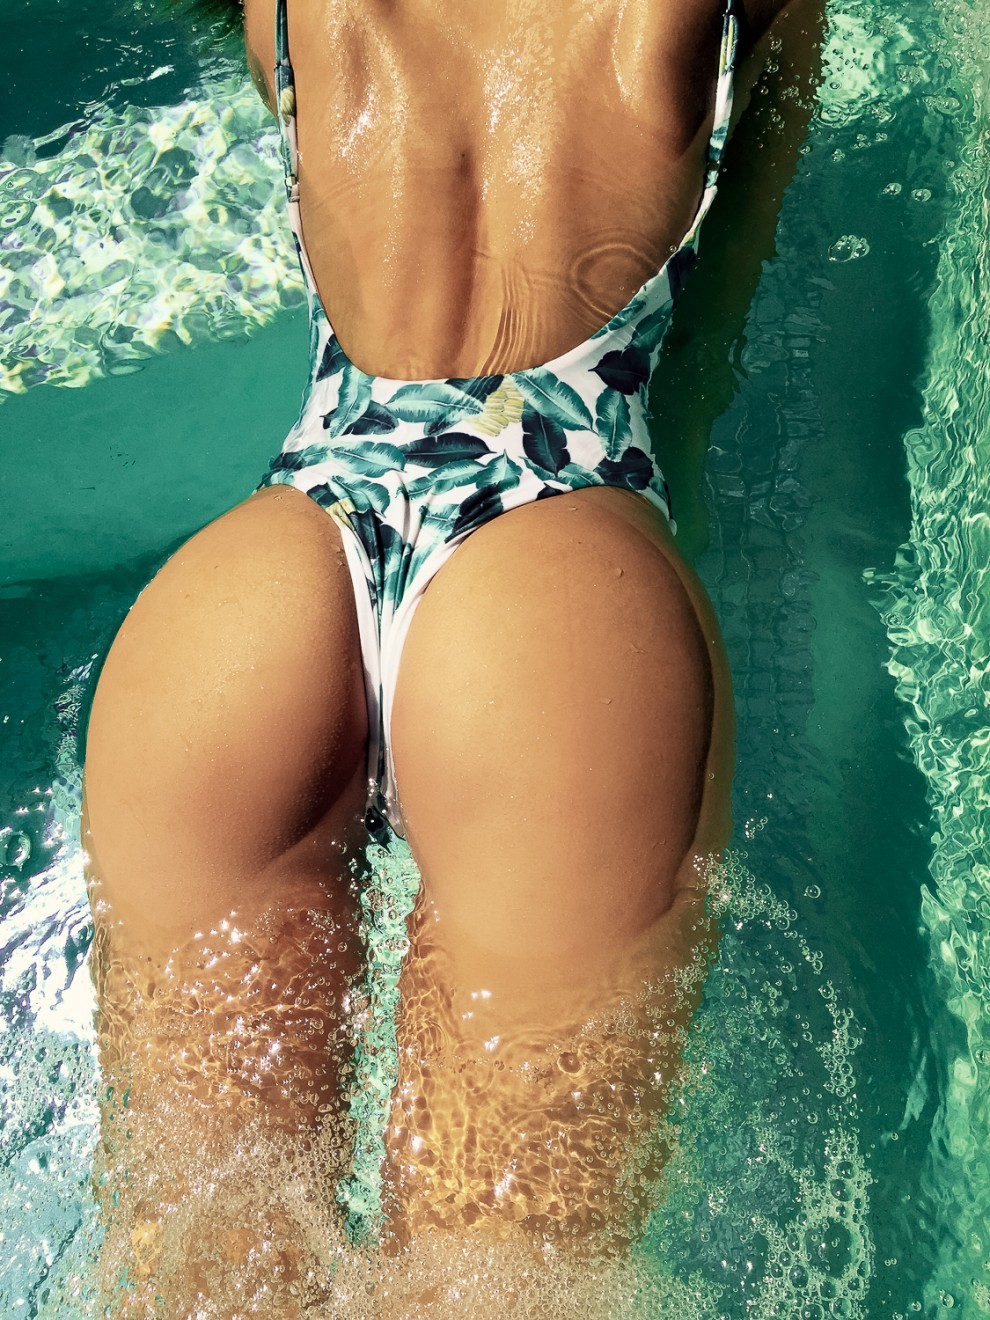 Perfect for the pool